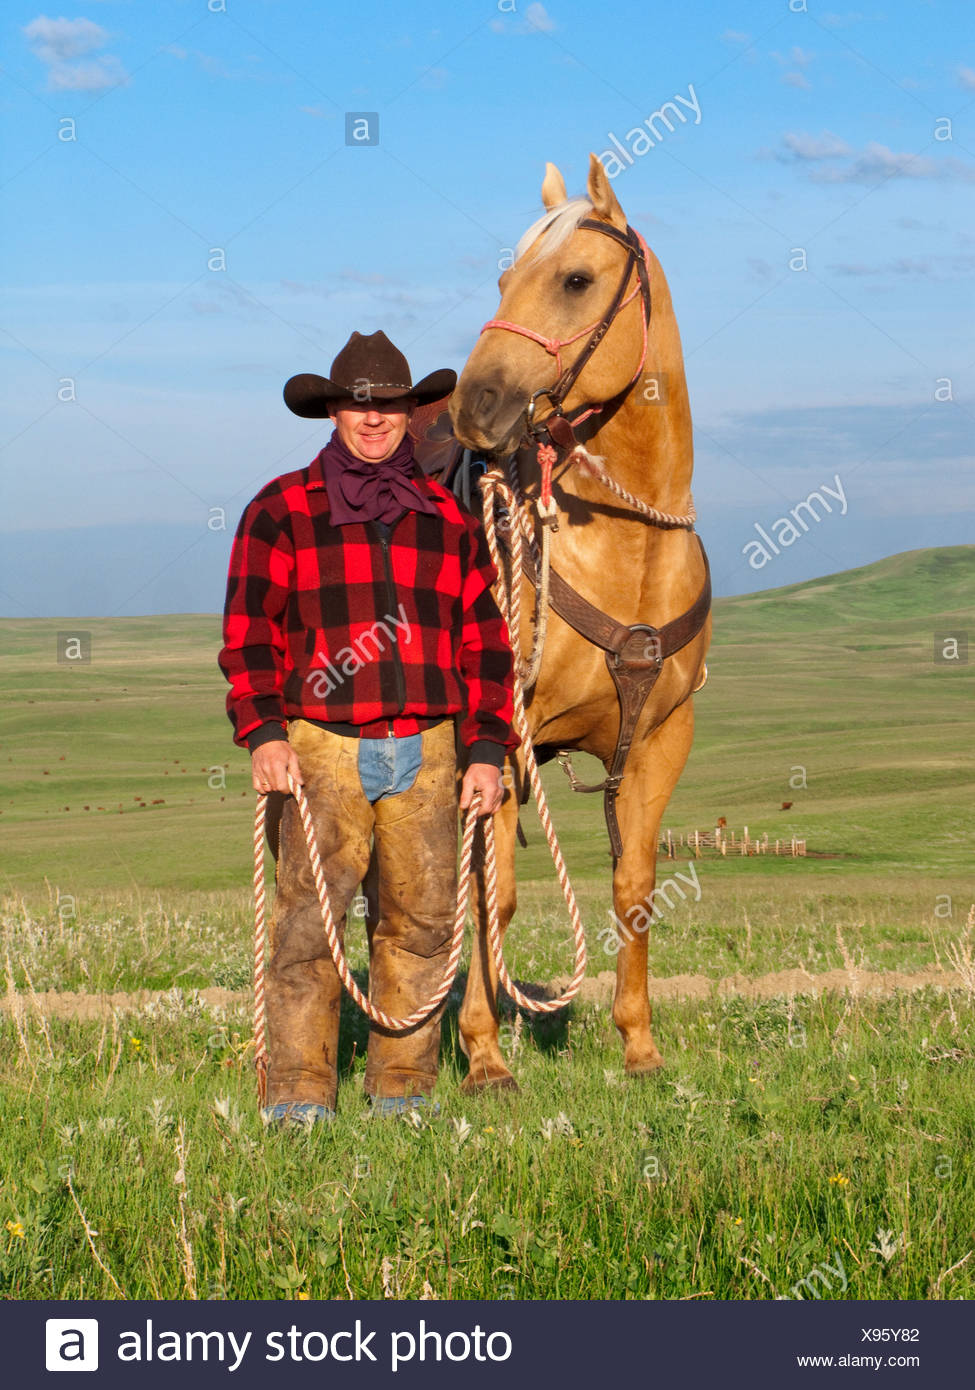 Livestock - A cowboy poses with his horse on a green prairie / Alberta, Canada. - Stock Image